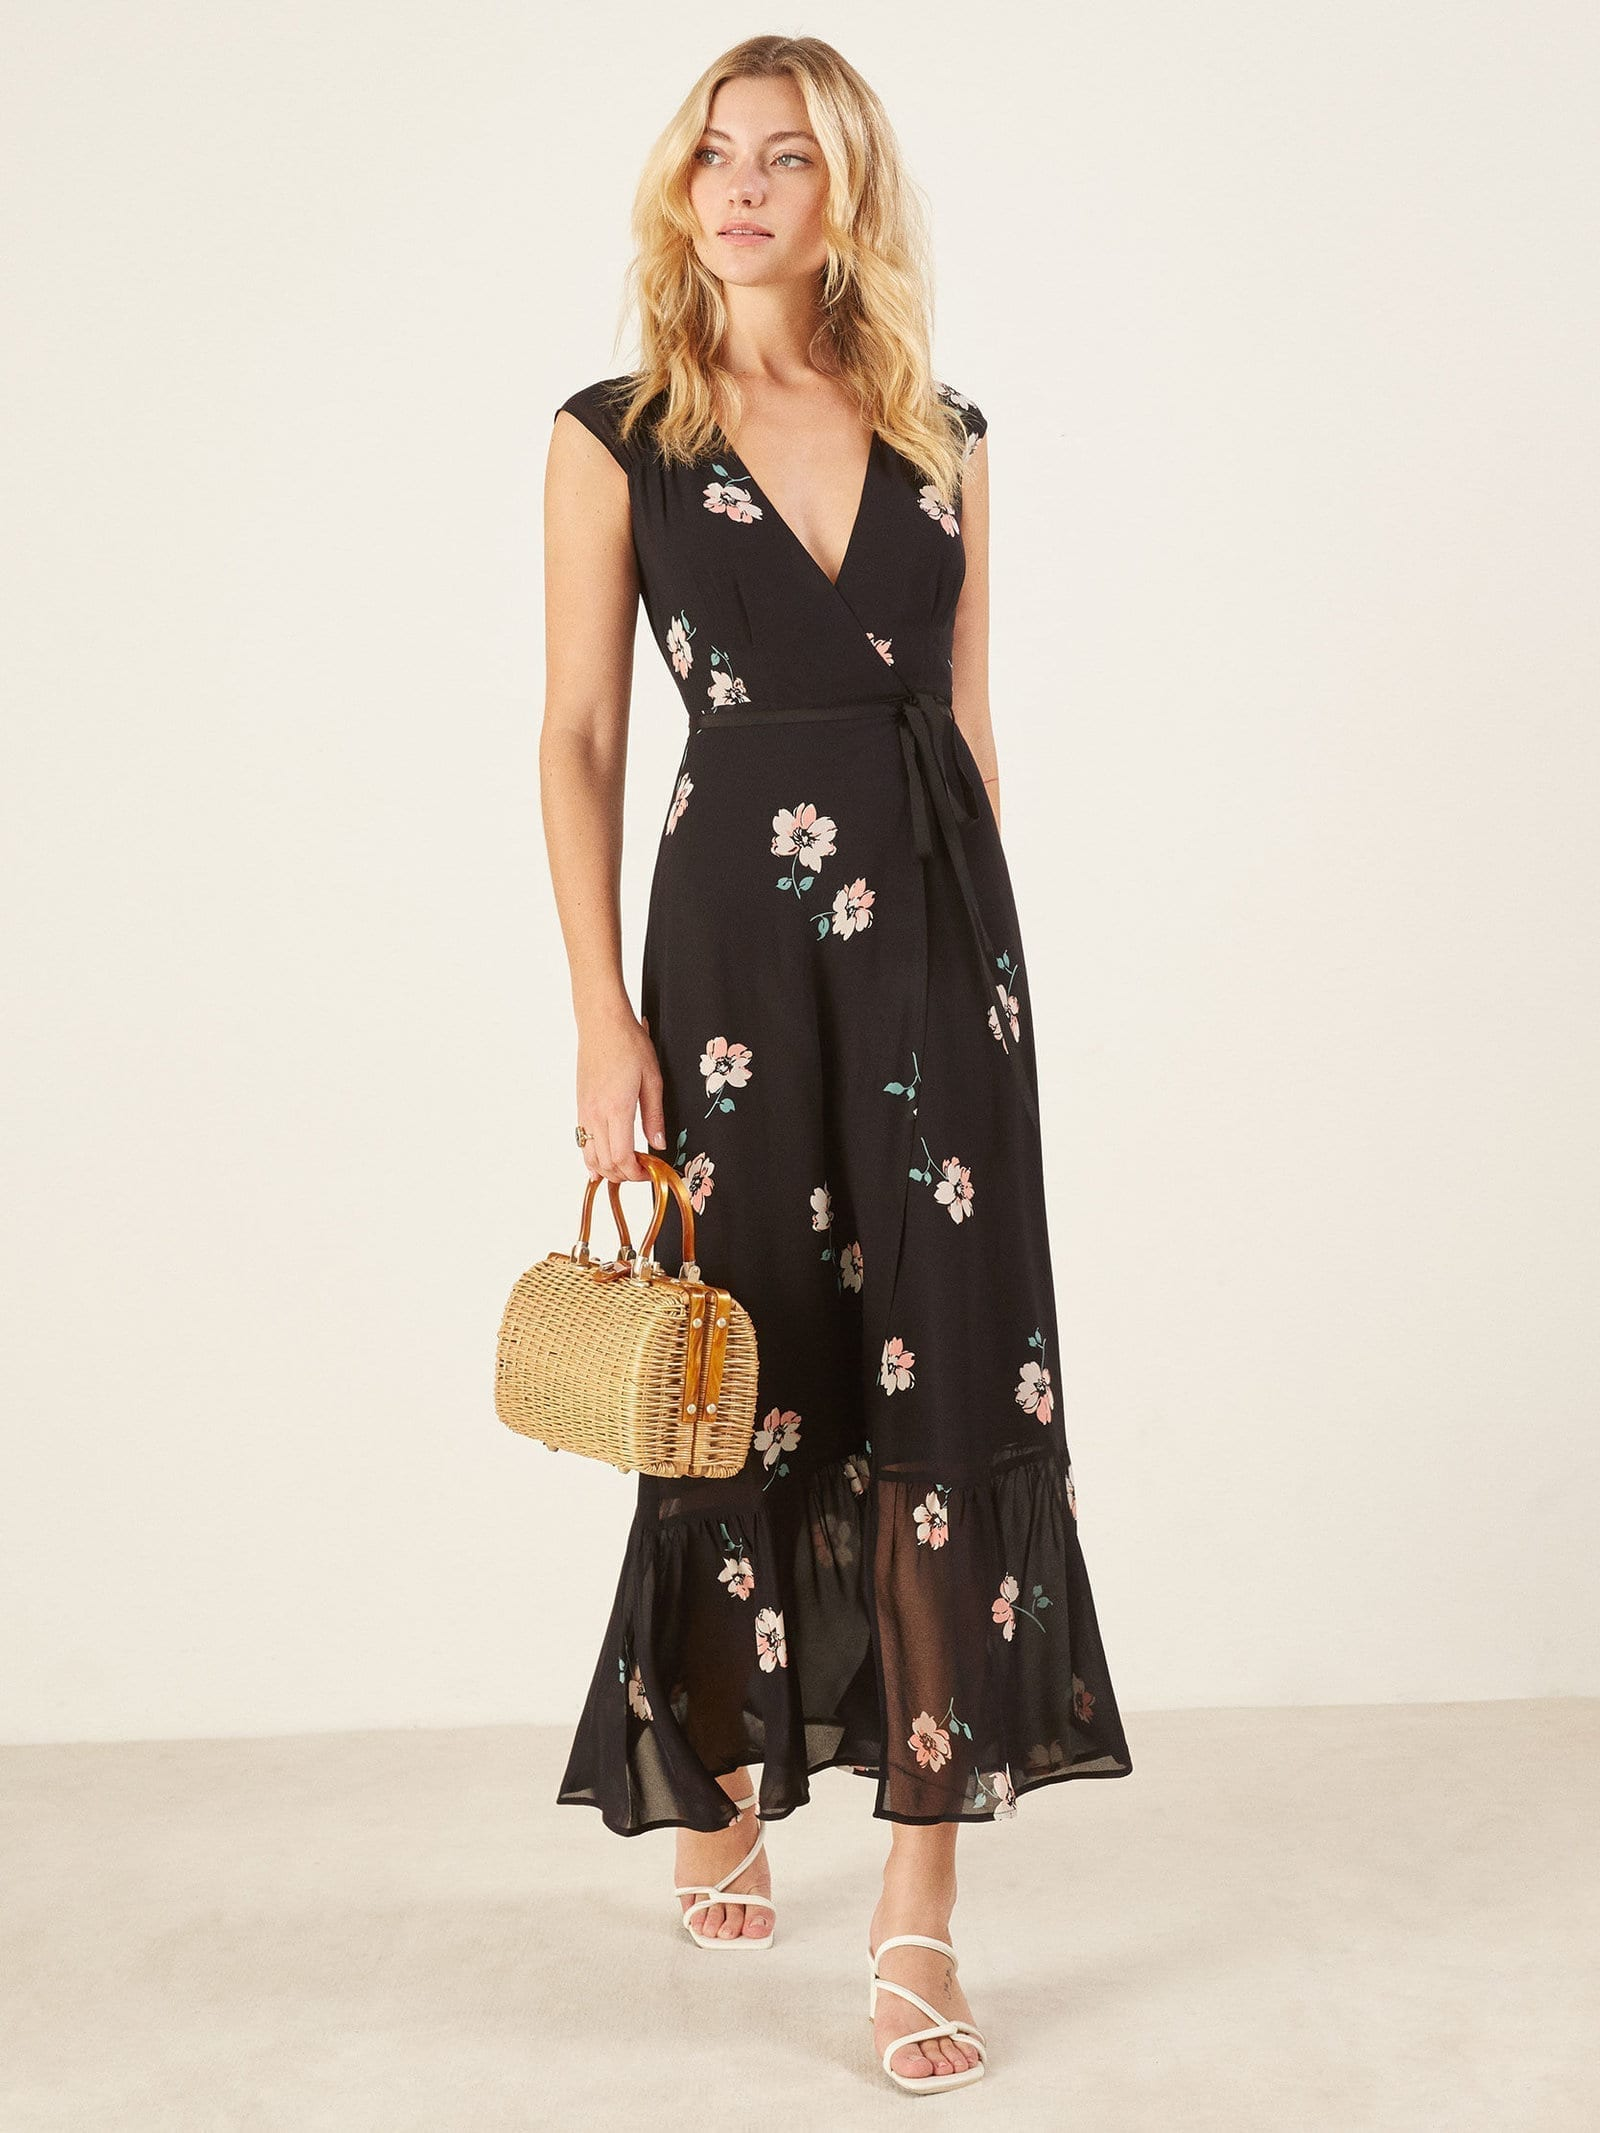 Reformation Haven Black Floral Printed Dress We Select